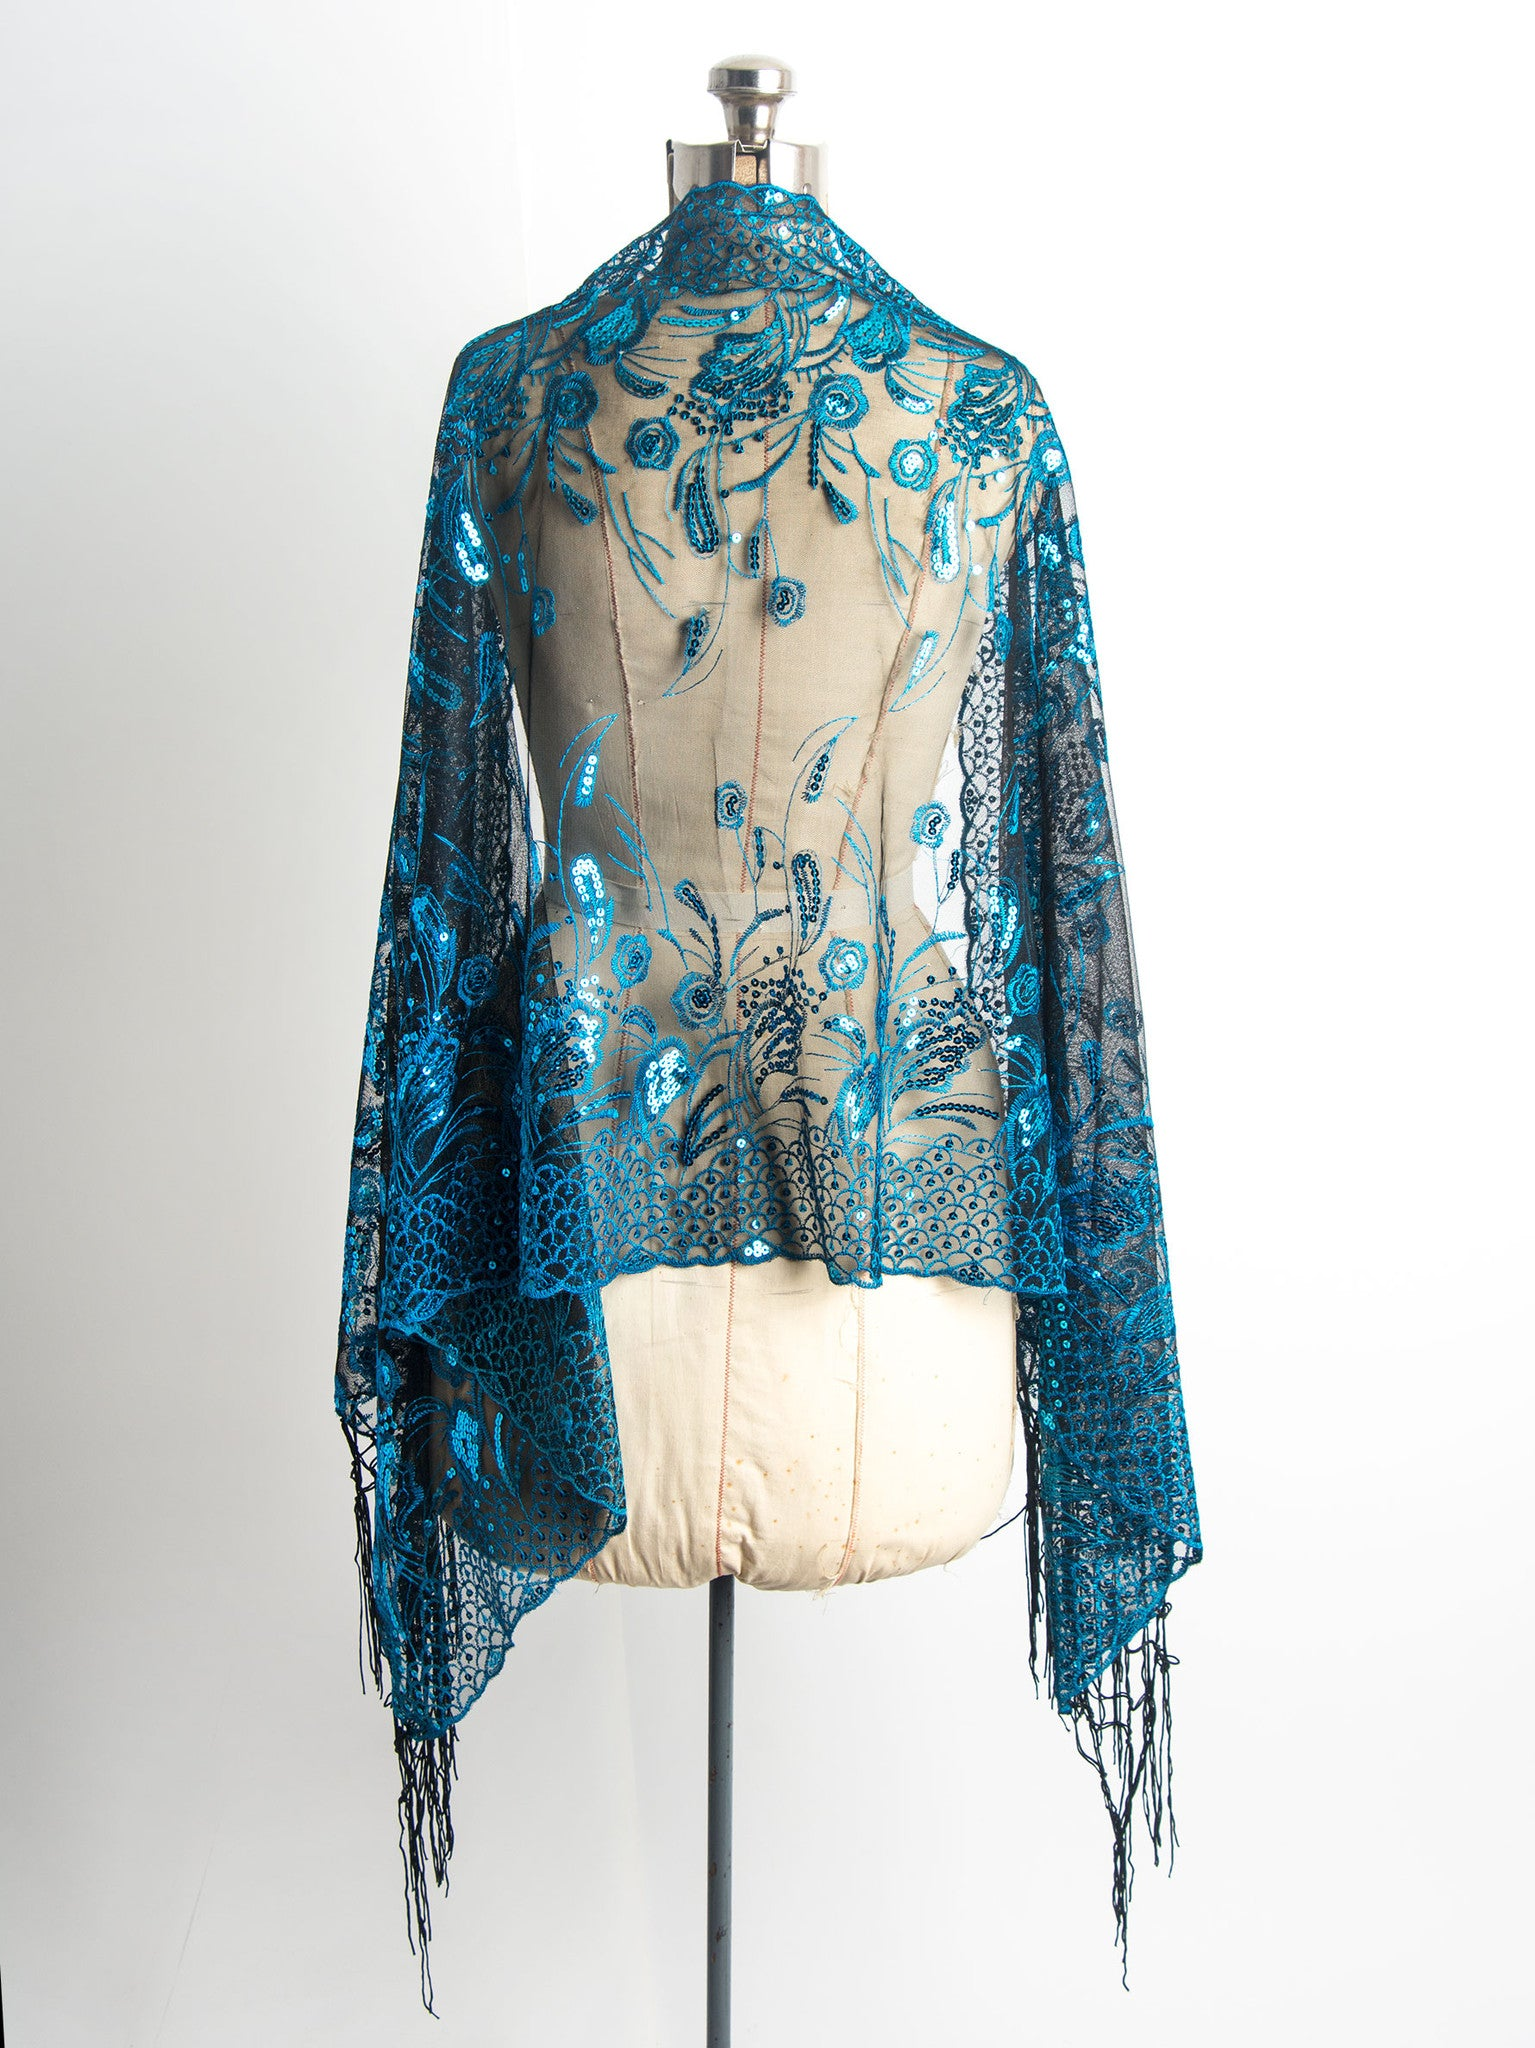 Scarves - Amaryllis Shawl, Vintage Inspired Sequin Evening Wrap, Embroidered Sequin Shawl, Scarf -() Bohomonde  - 4